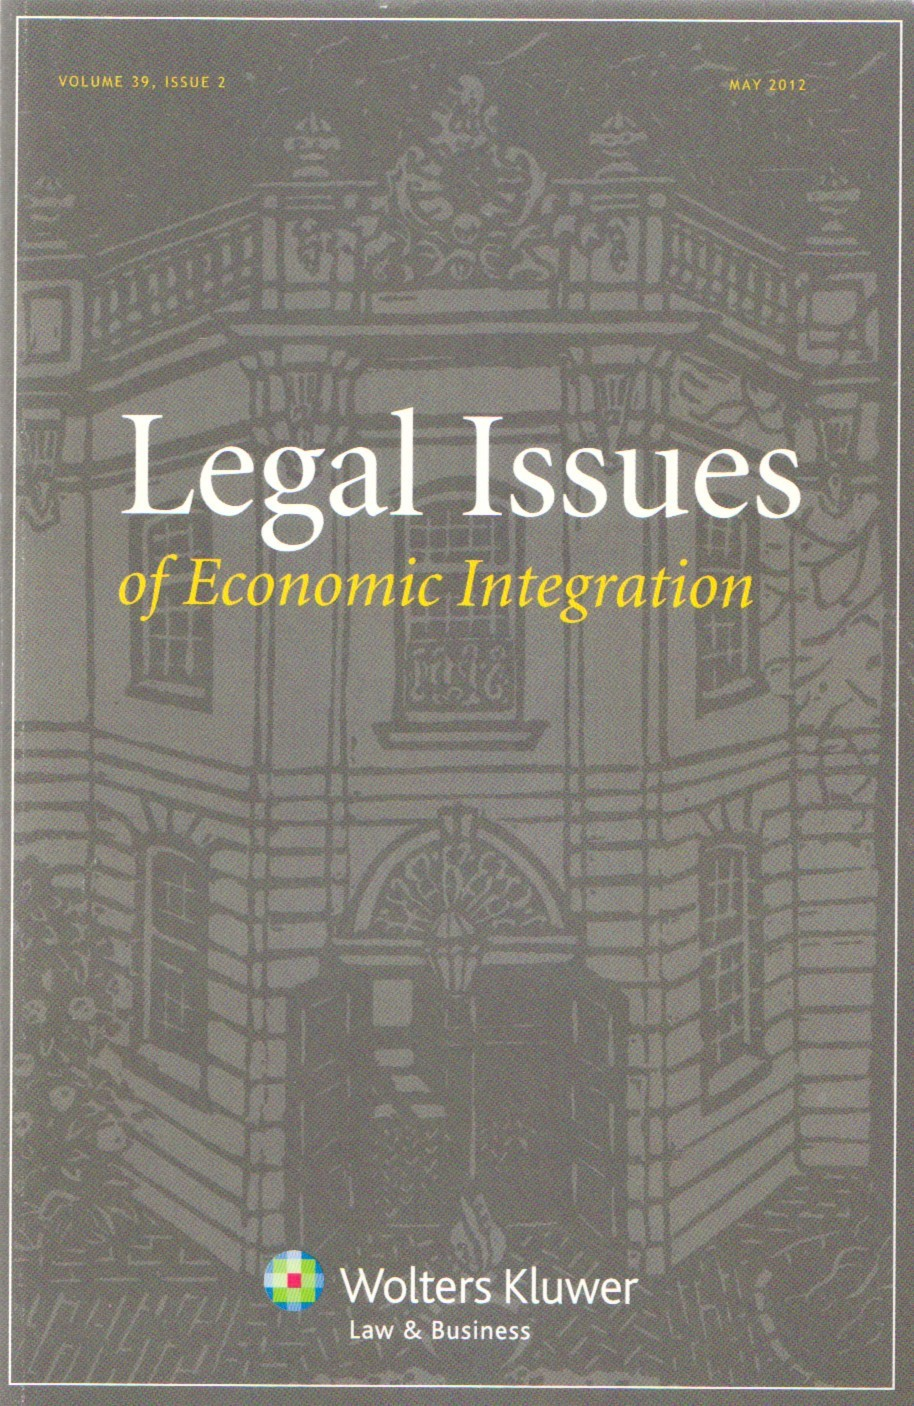 Circumventing Primacy of EU Law and the CJEU's Judicial Monopoly by Resorting to Dispute Resolution Mechanisms Provided for in Inter-se Treaties? The Case of Intra-EU Investment Arbitration